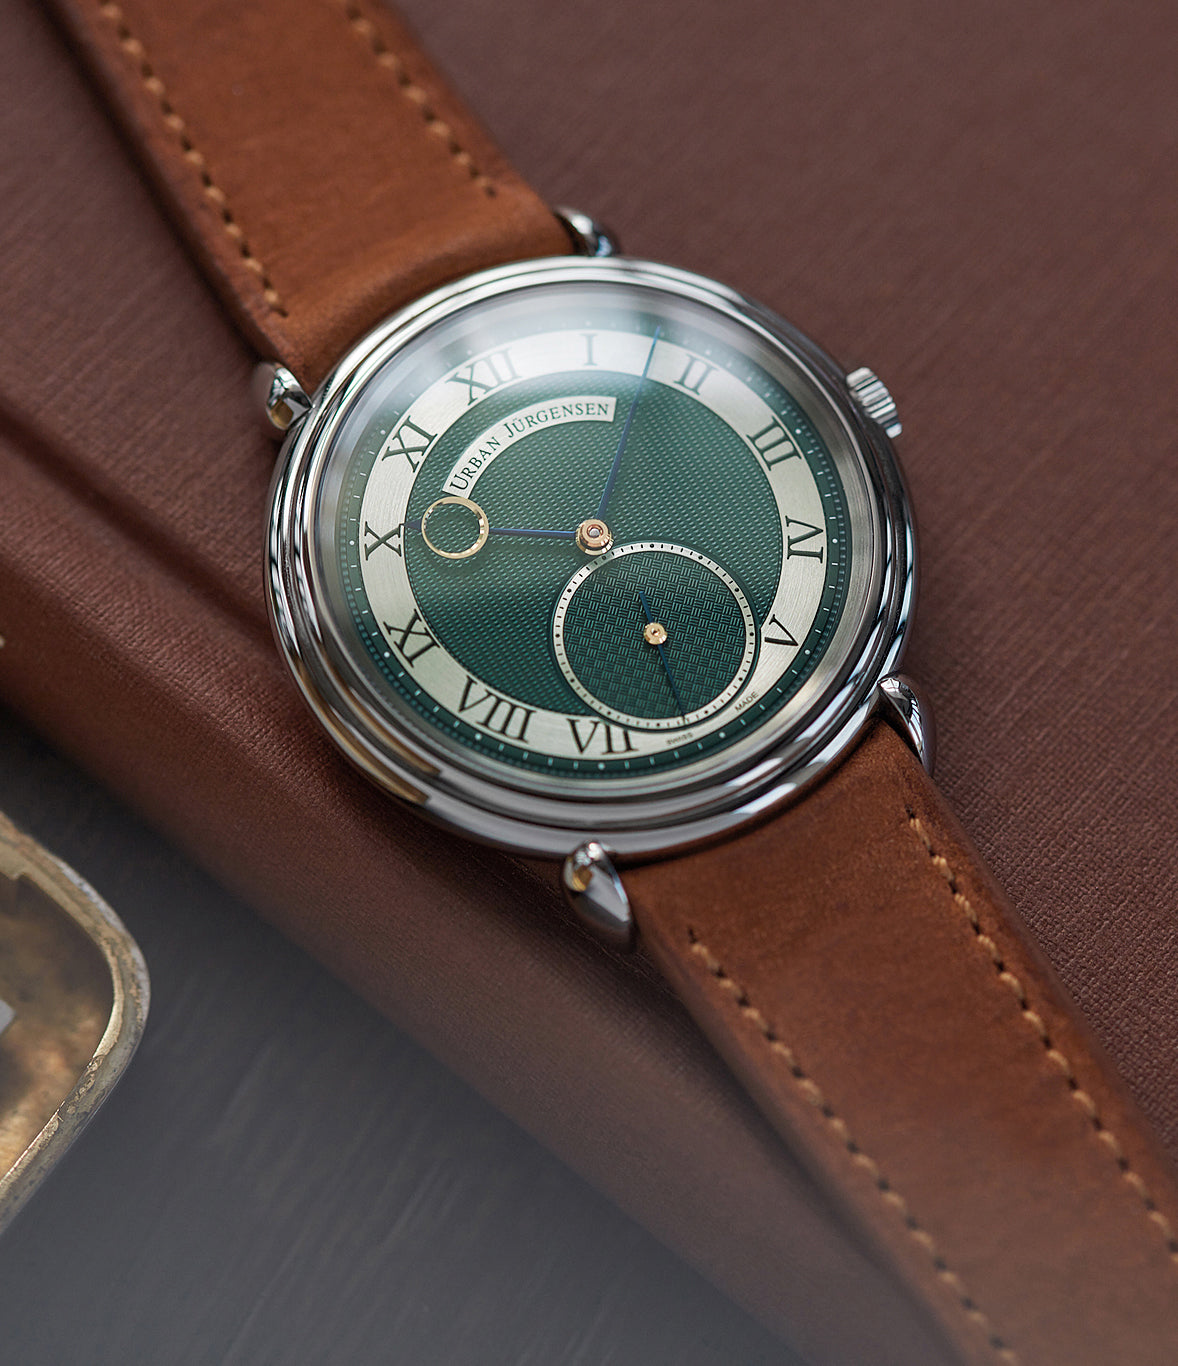 urban jurgensen watch sale for Covid-19 vaccine development London Limited Edition Urban Jürgensen British racing green dial steel time-only dress watch for sale exclusively at A Collected Man London